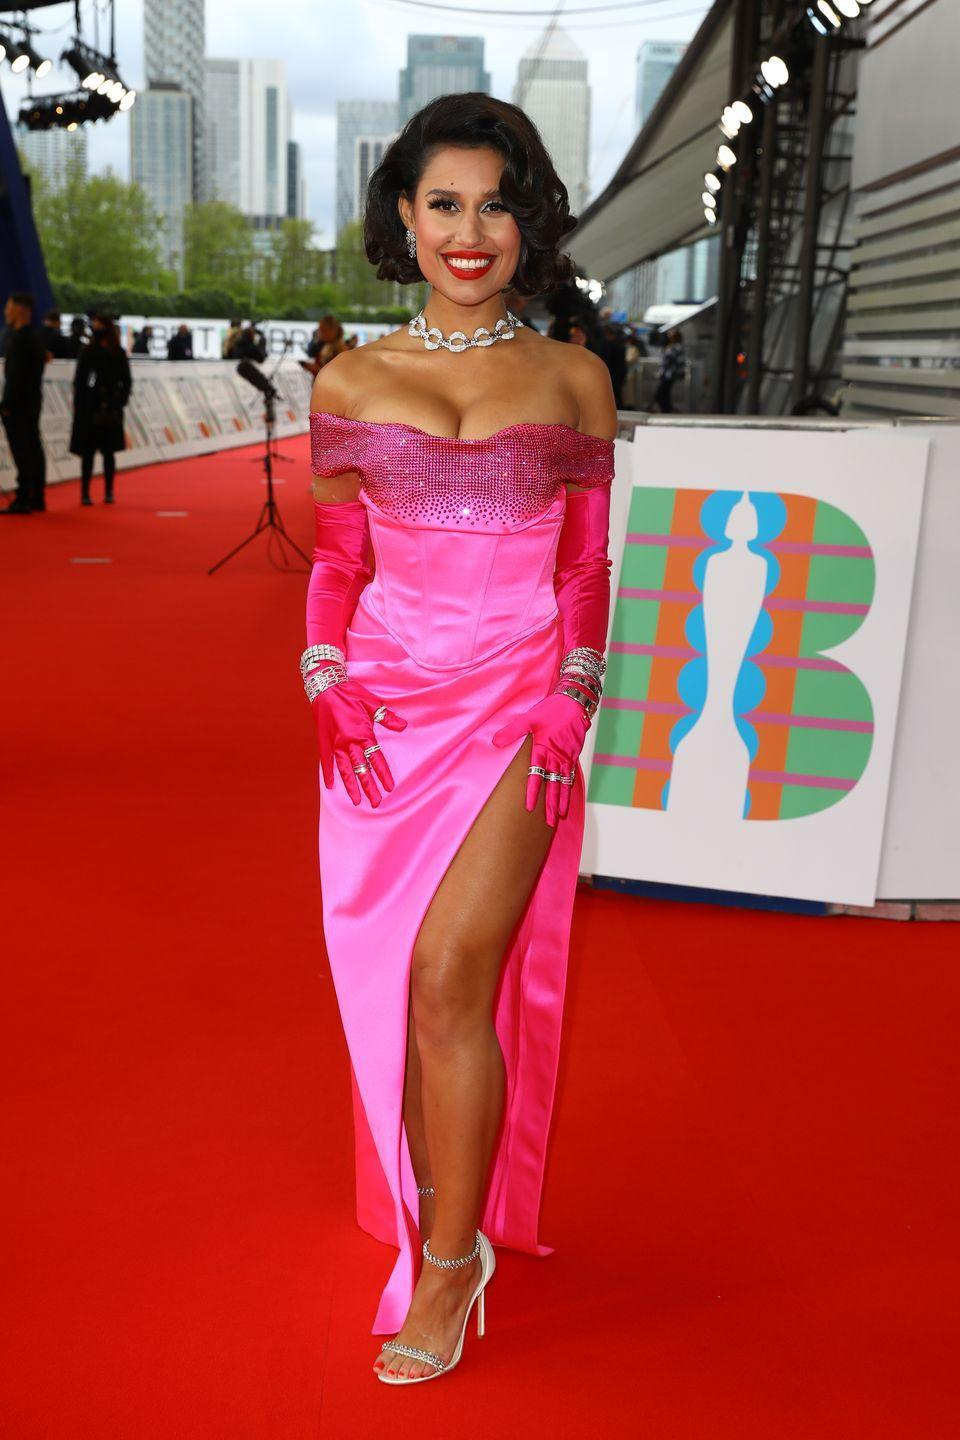 <p>Raye was inspired by Marilyn Monroe's iconic look in Gentlemen Prefer Blondes, wearing a bright pink dress by Etro, which she teamed with Bulgari jewellery.</p>